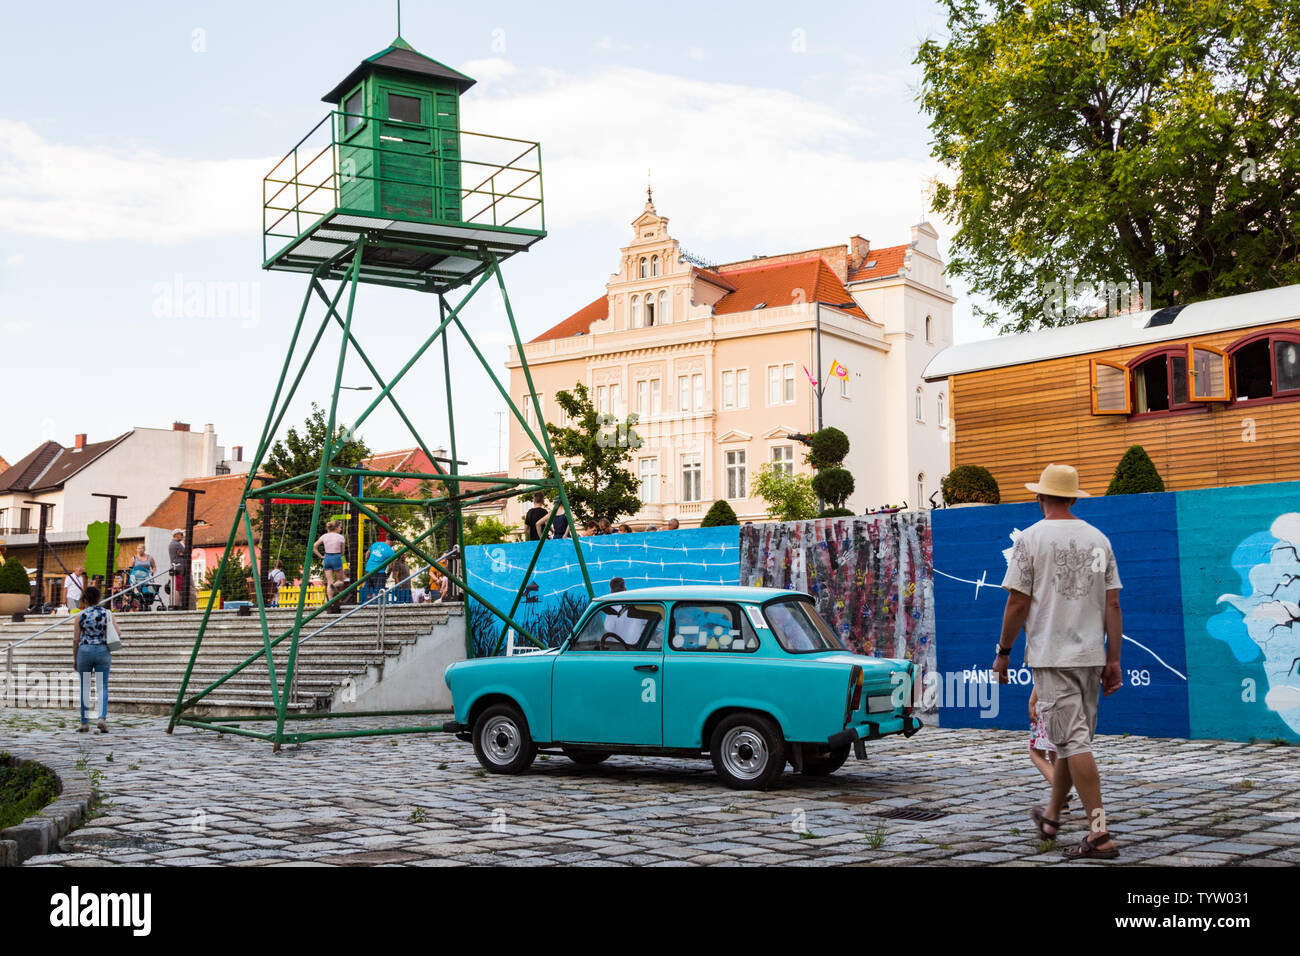 Street exhibition with Trabant car and border guard watchtower in remembrance of  Pan-European Picnic 1989 - Stock Image